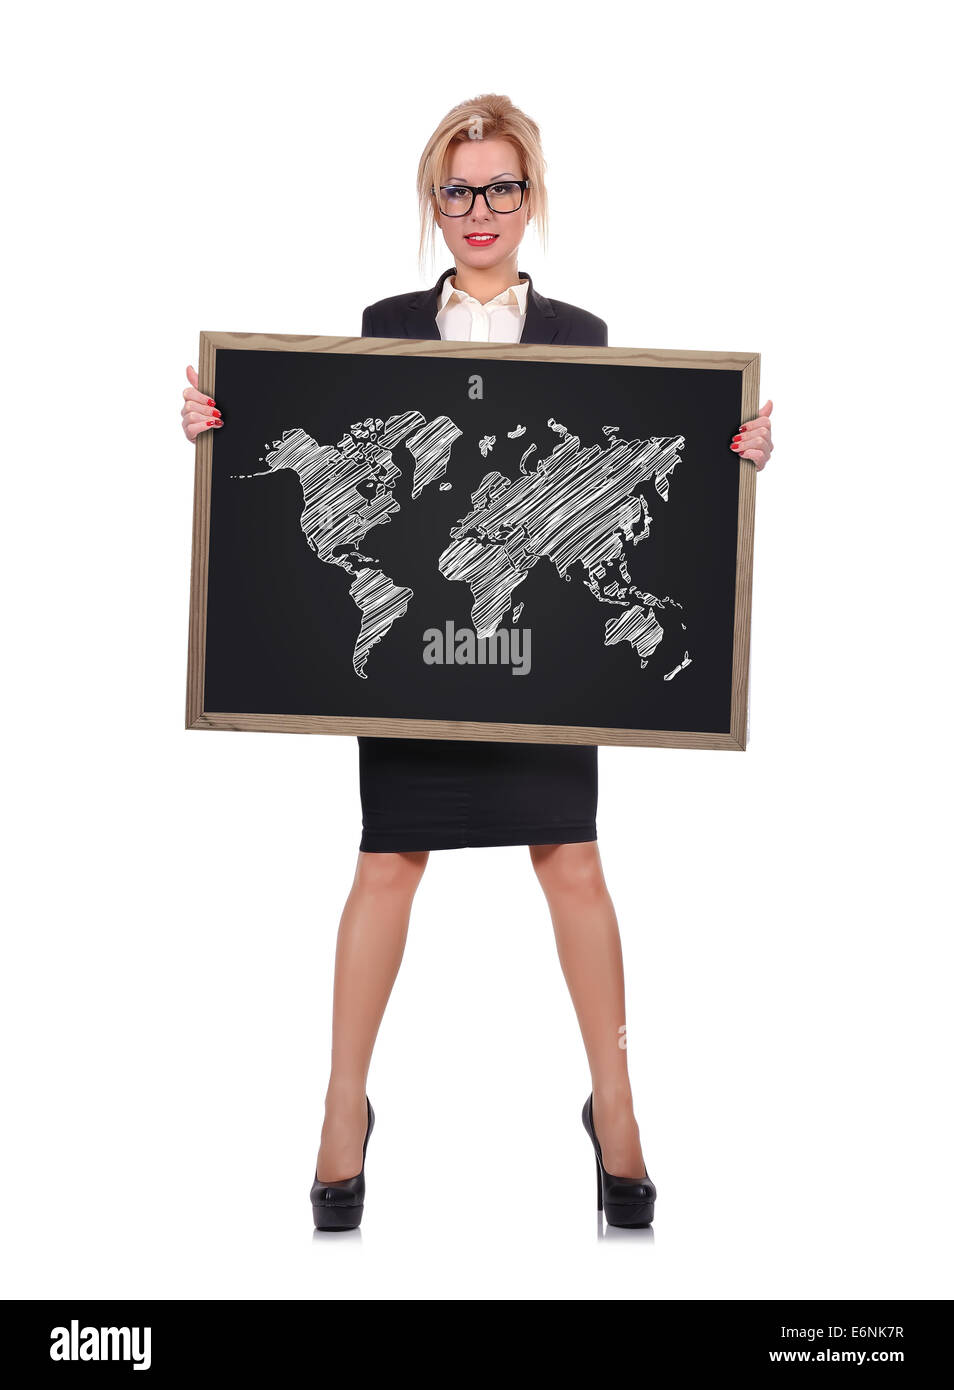 Teacher holding blackboard with drawing world map stock photo teacher holding blackboard with drawing world map gumiabroncs Image collections